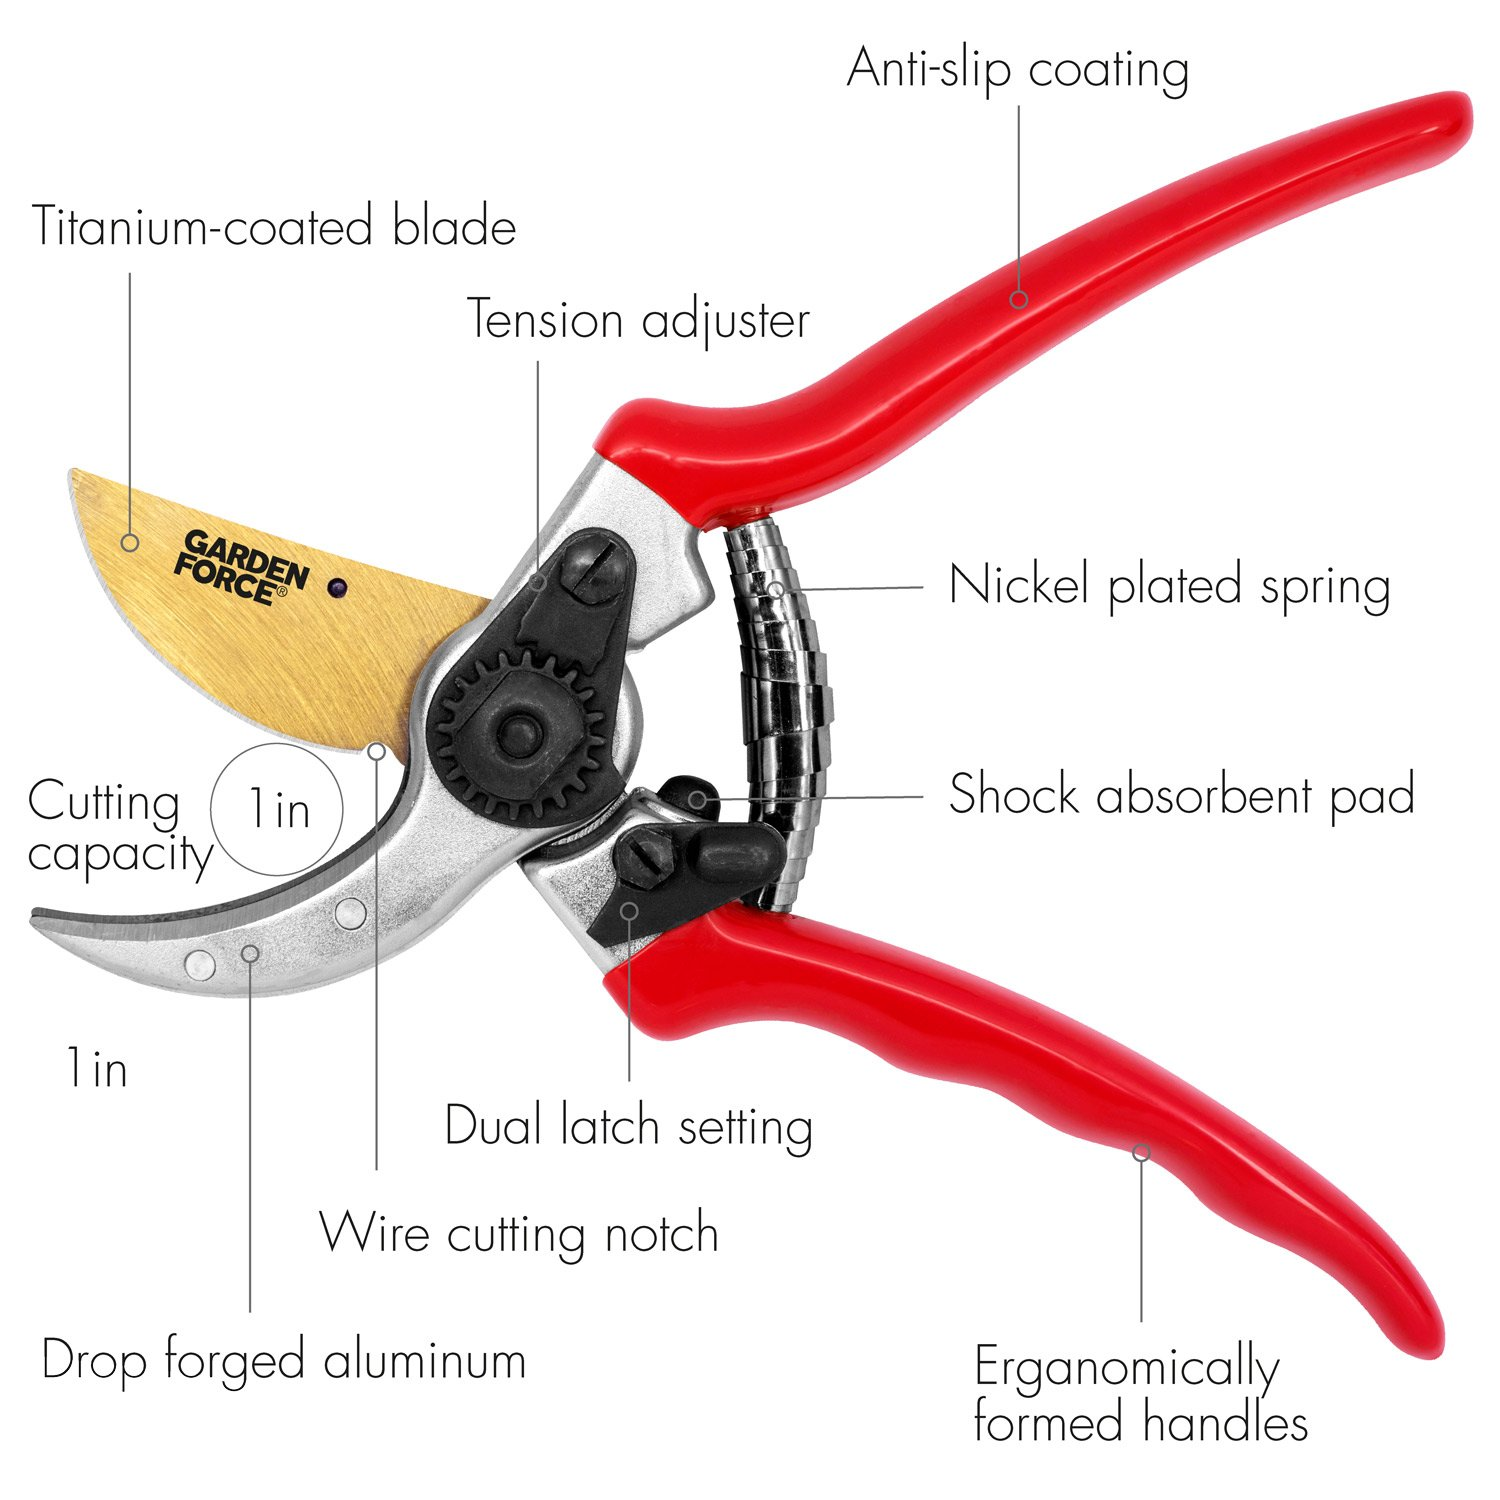 Bypass Garden Pruners By Garden force, Hand Pruners With Titanium Coated Blades For Effortless Plant Trimming, Adjustable Steel Dropped Forged Garden Shears Handles For a Better Gardening Experience